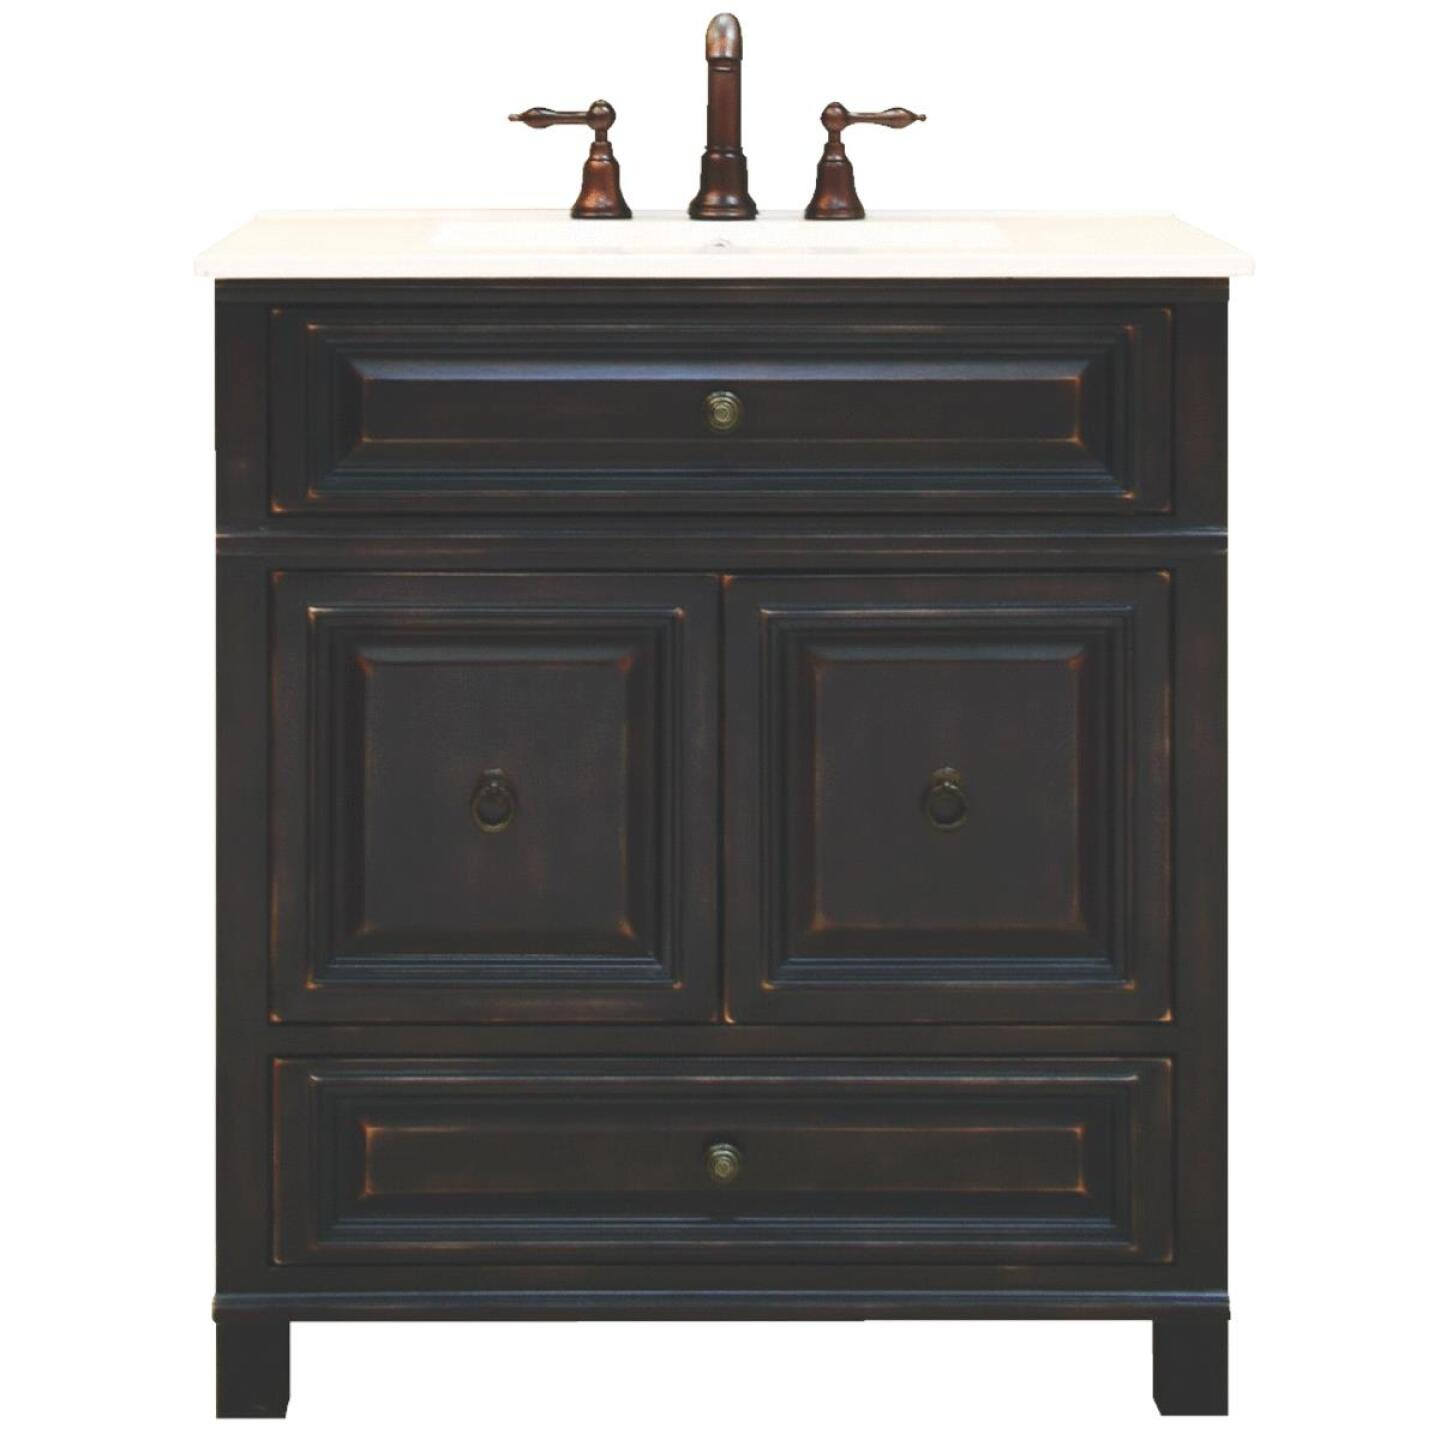 Sunny Wood Barton Hill Black Onyx 30 In. W x 34 In. H x 21 In. D Vanity Base, 2 Door/1 Drawer Image 137